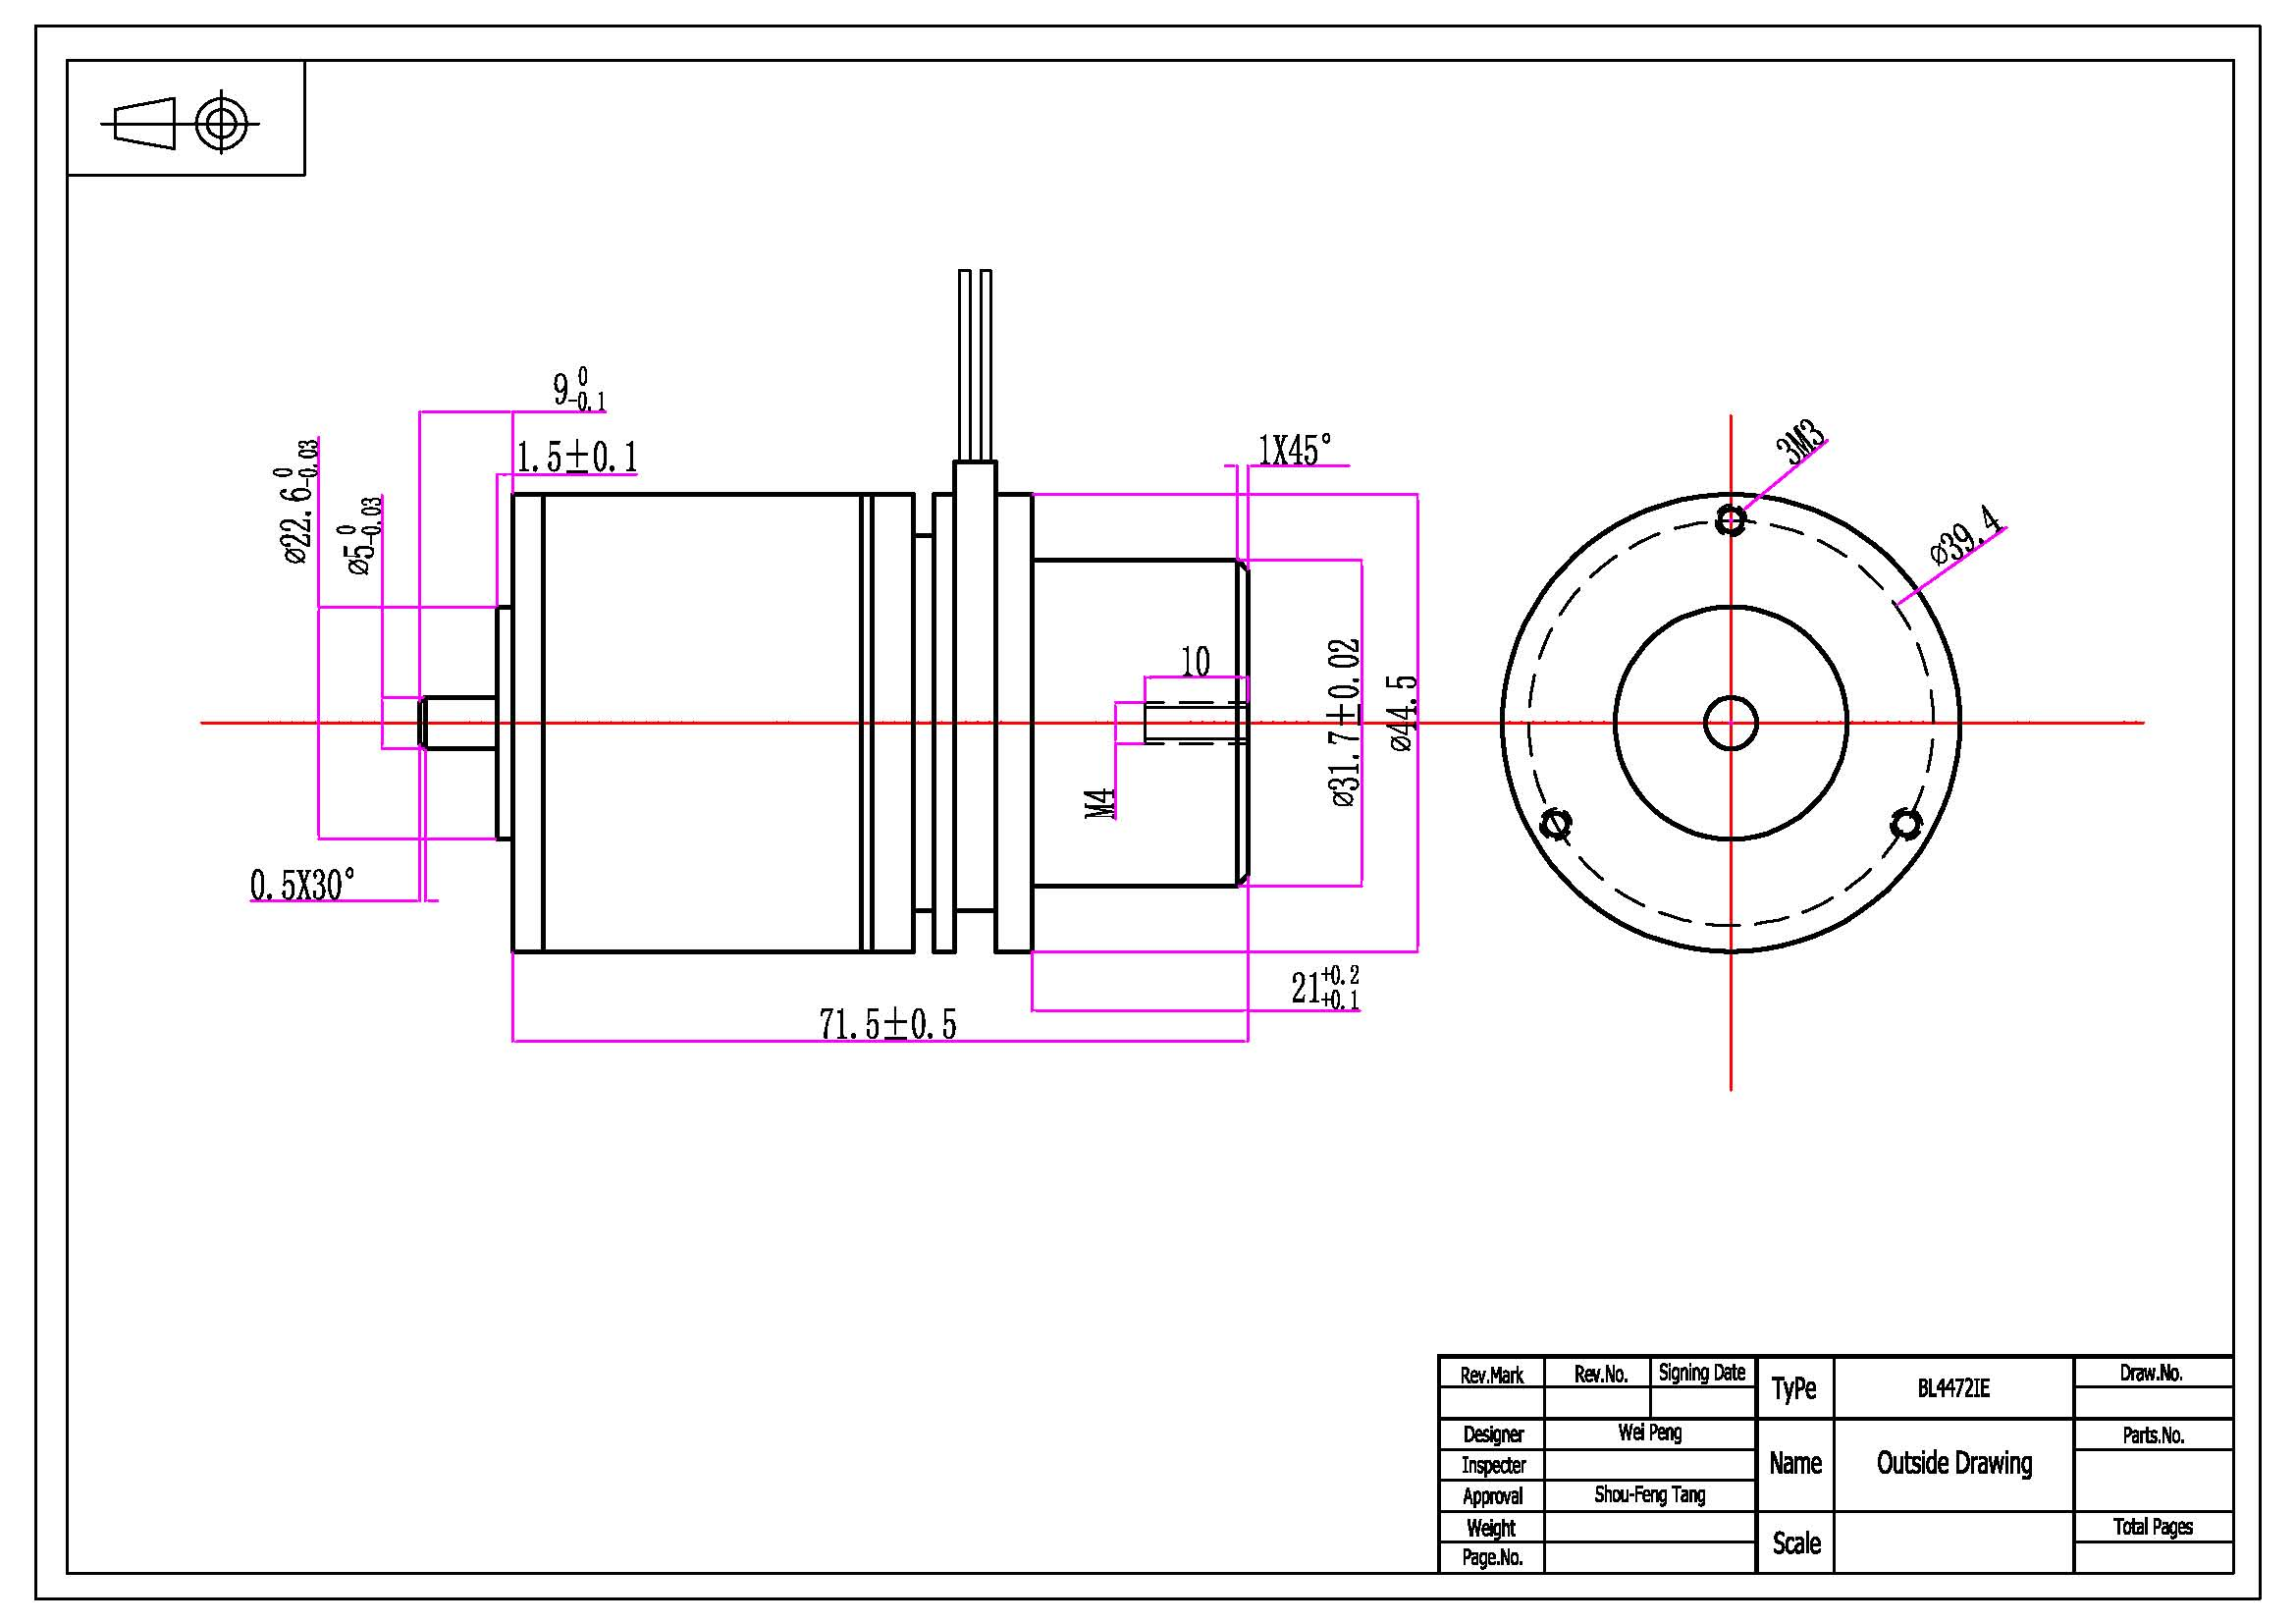 44mm Dia X 72mm Length Bl Ie Embedded Controller